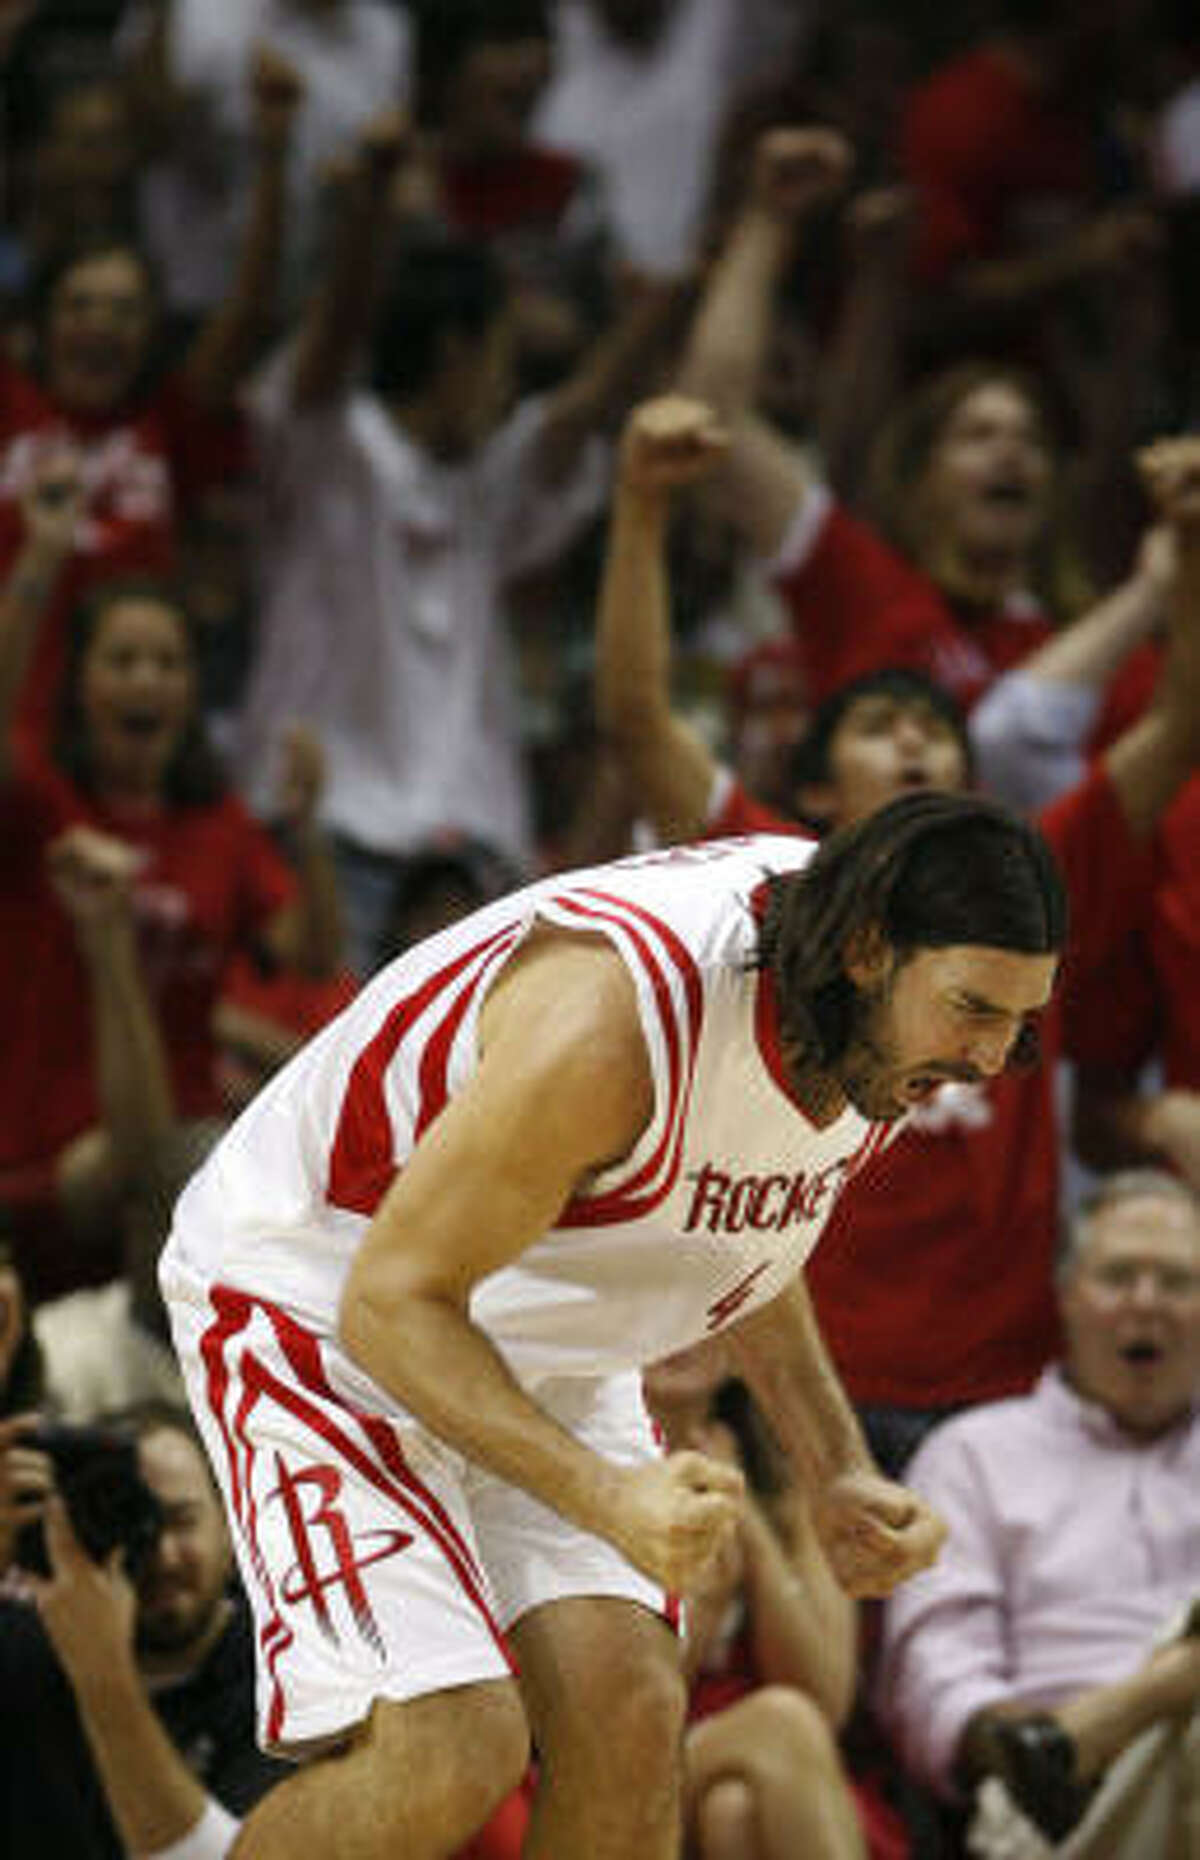 May 12, 2009 - Rockets 95, Lakers 80 . Luis Scola had 24 points and 12 rebounds to lead the Rockets to a Game 6 victory that tied the second-round series, 3-3.